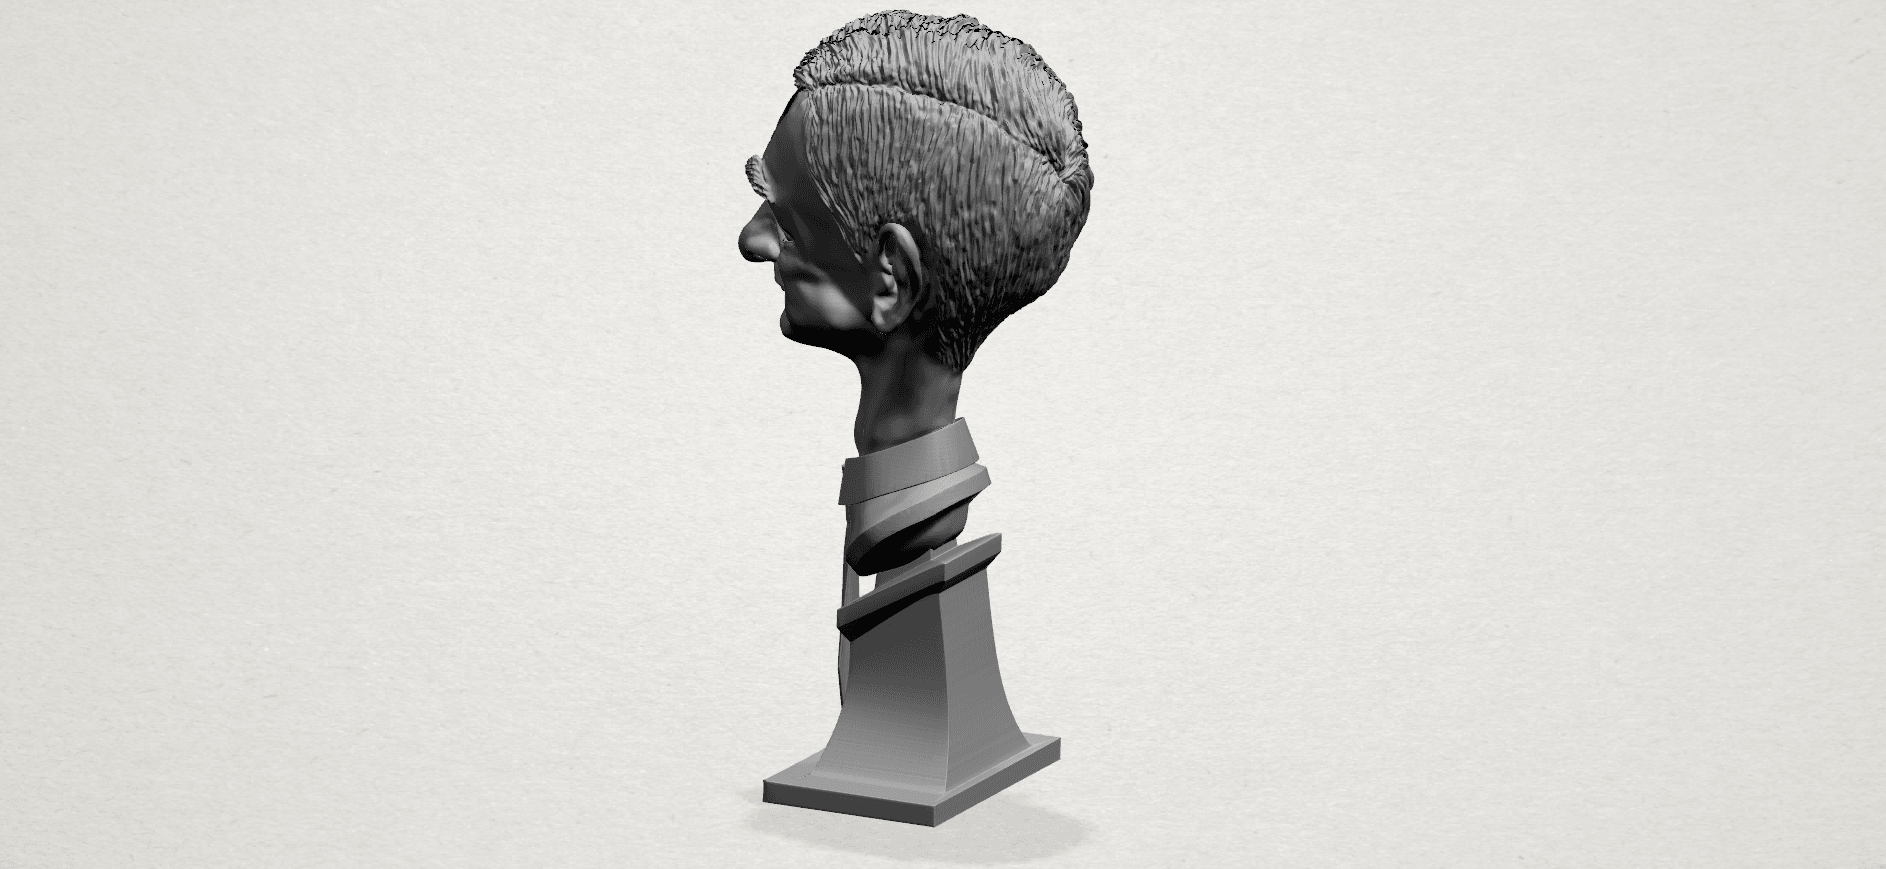 Sculpture of a man - A03.png Download free STL file Sculpture of a man 01 • 3D printable object, GeorgesNikkei